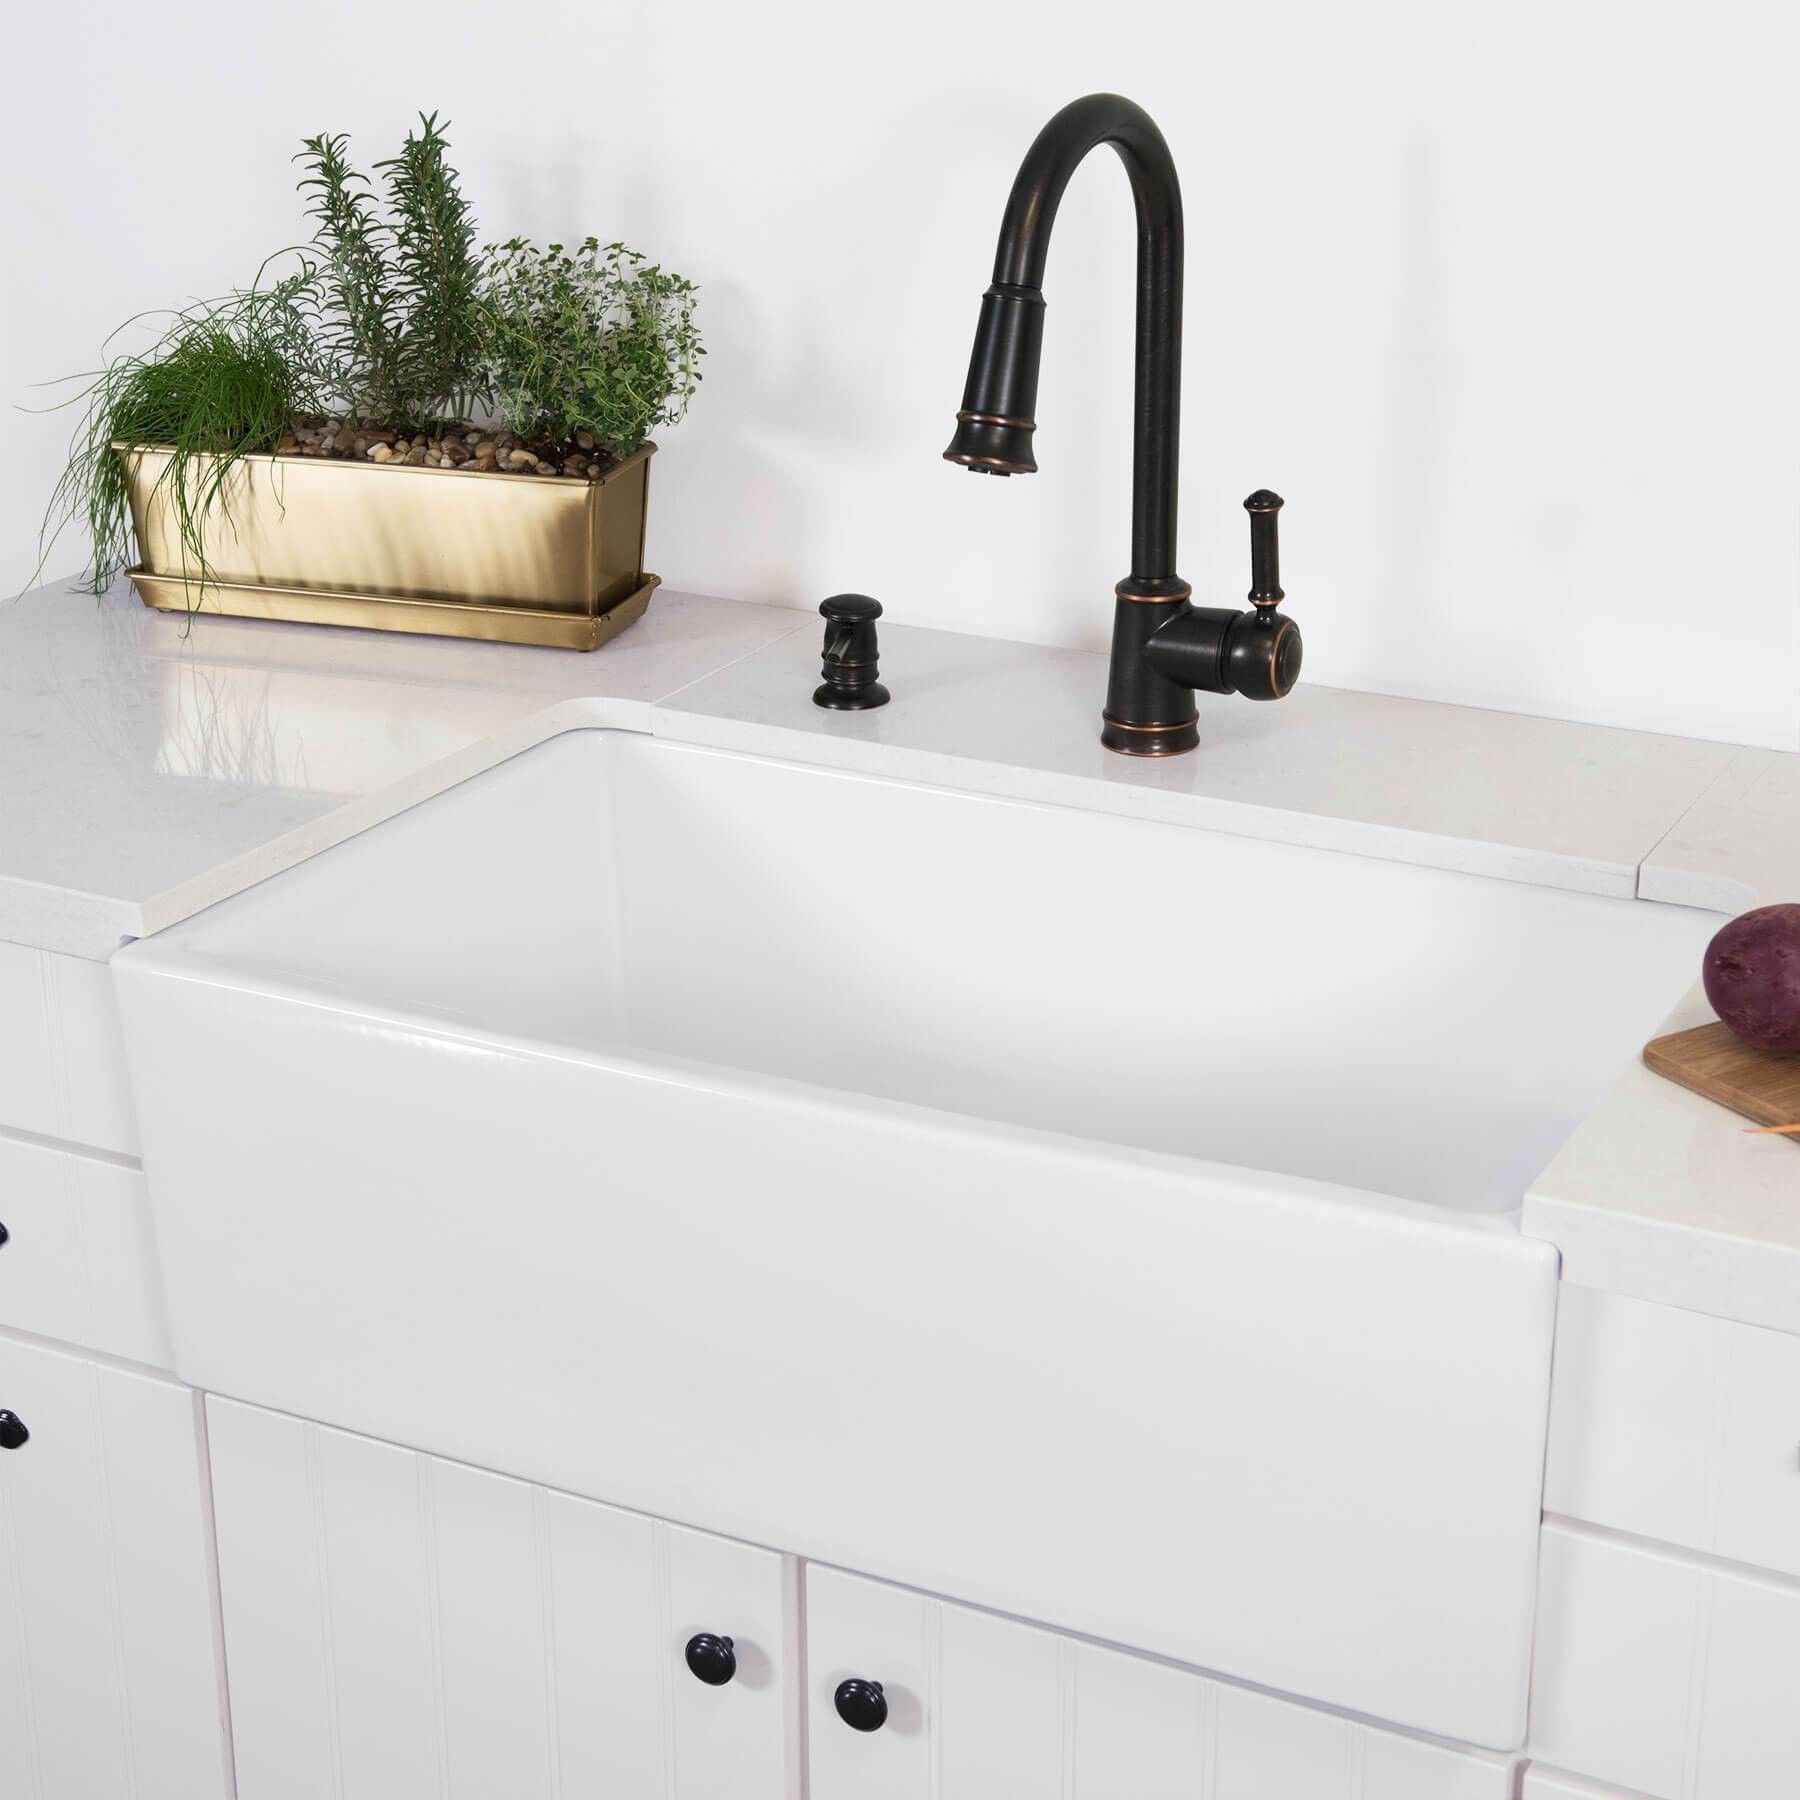 Surrey 30 Fireclay Farmhouse Kitchen Sink Farmhouse Sink Kitchen White Farmhouse Sink White Farmhouse Kitchens